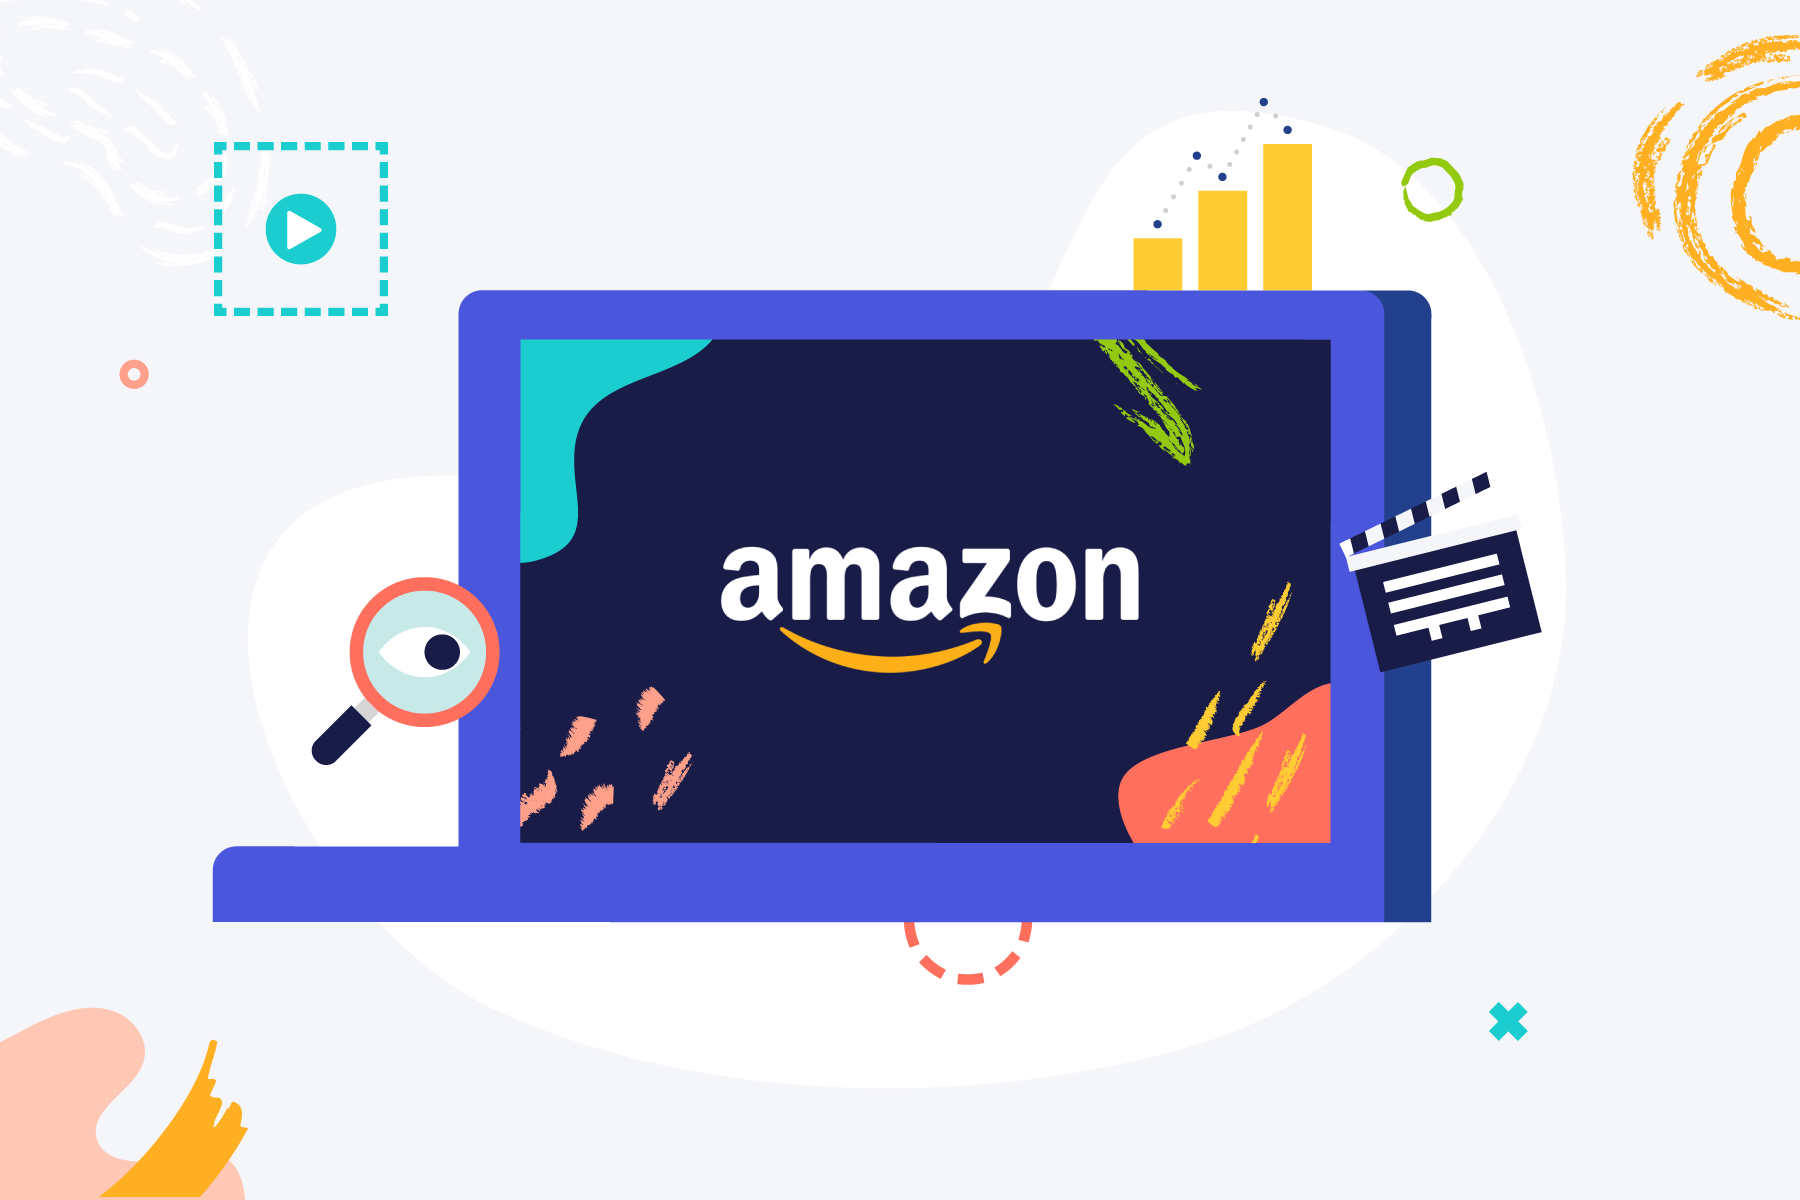 Zonbase - Tools for Amazon seller